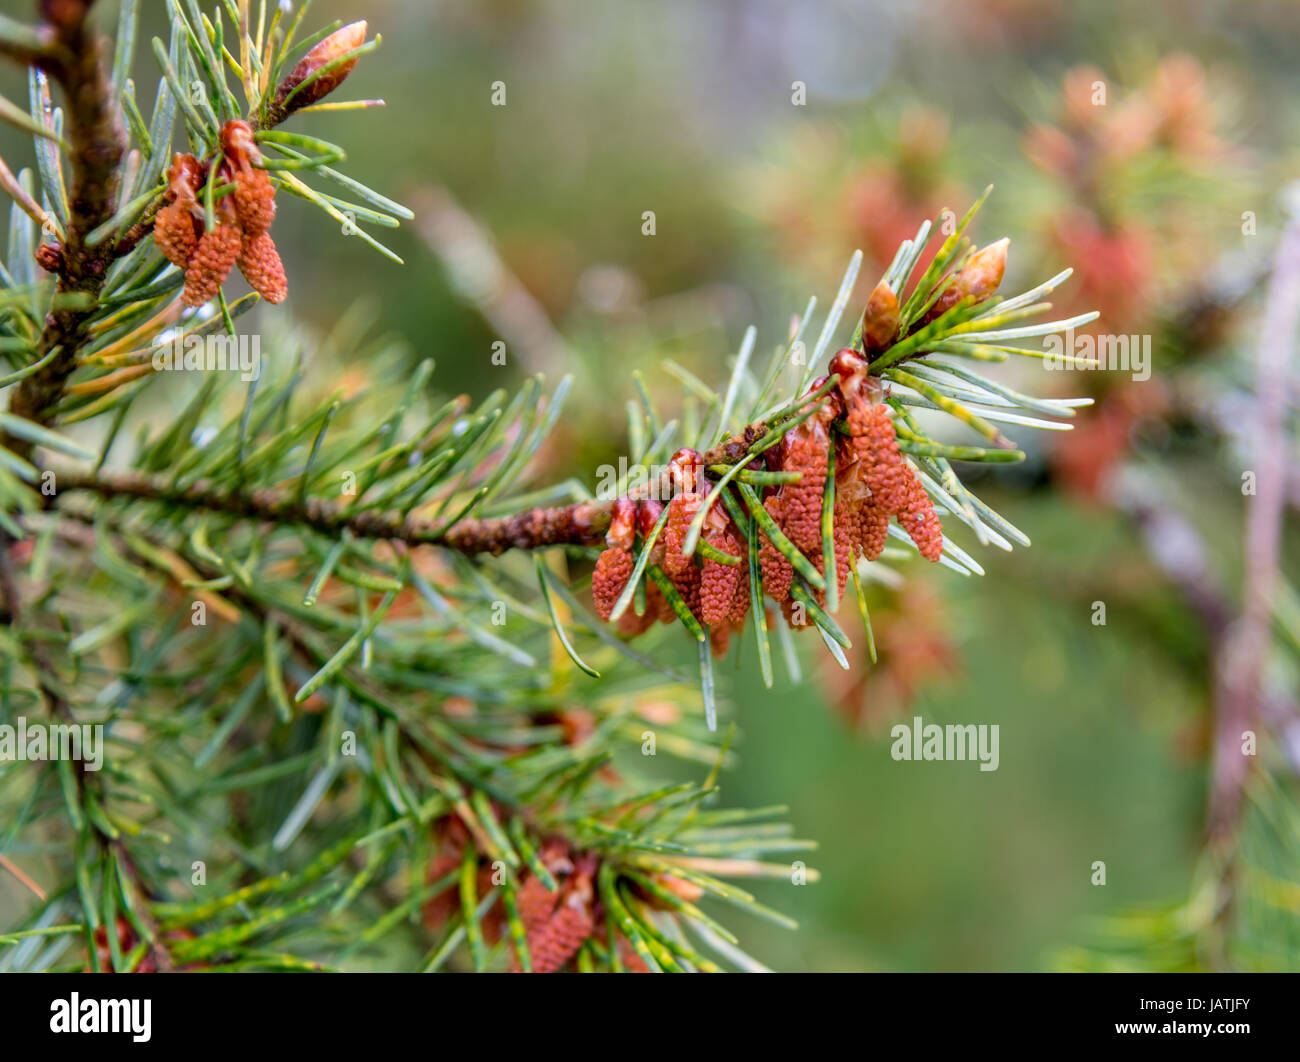 Pine branch with needles and flowers/developing pine cones - Stock Image